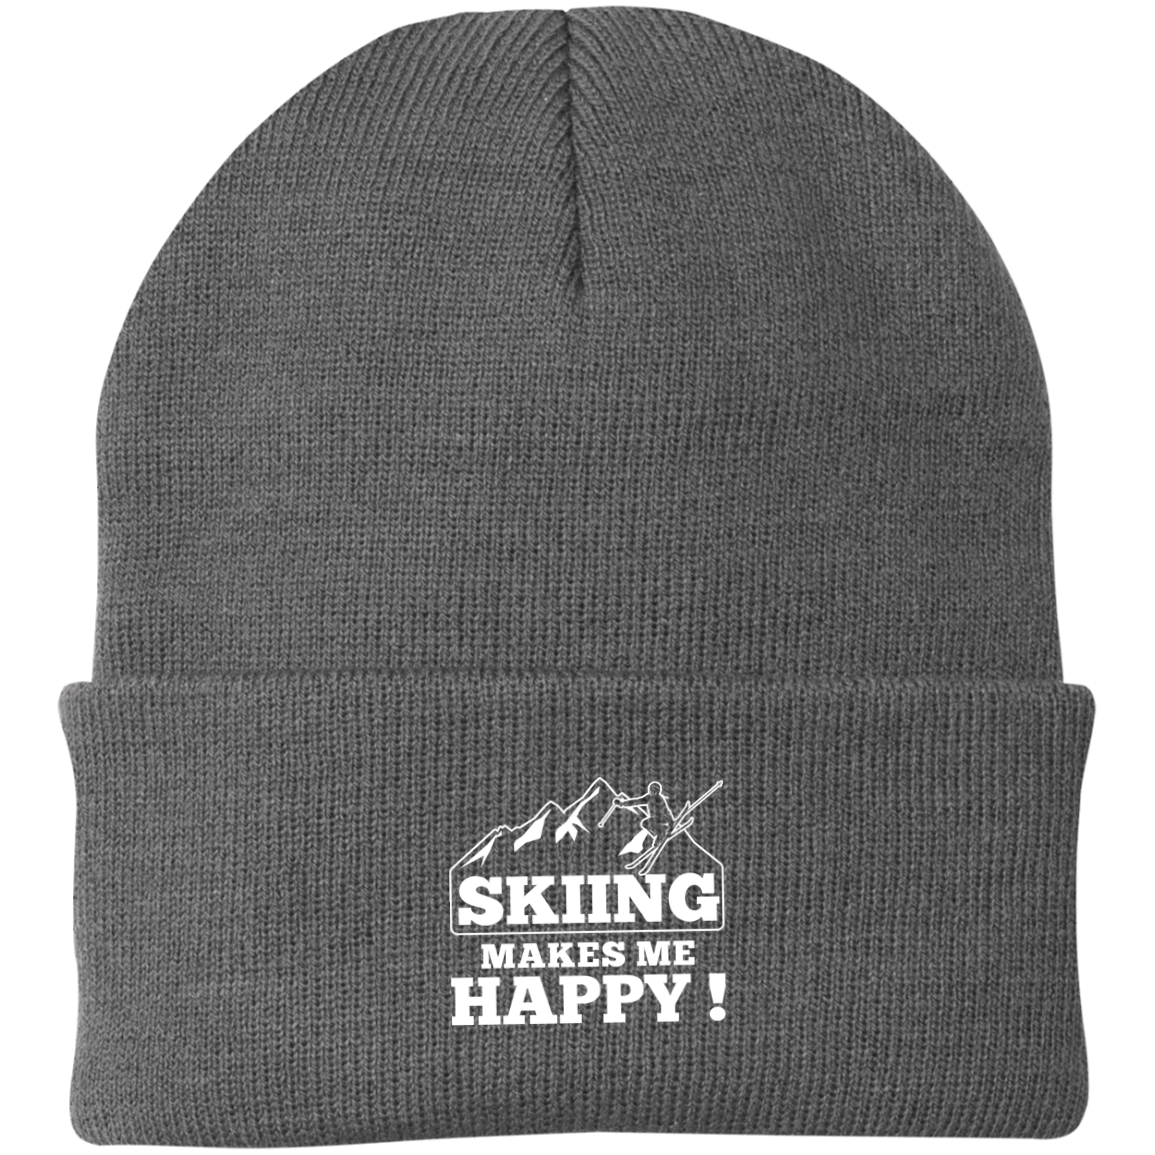 Skiing Makes Me Happy Knit Cap - Powderaddicts